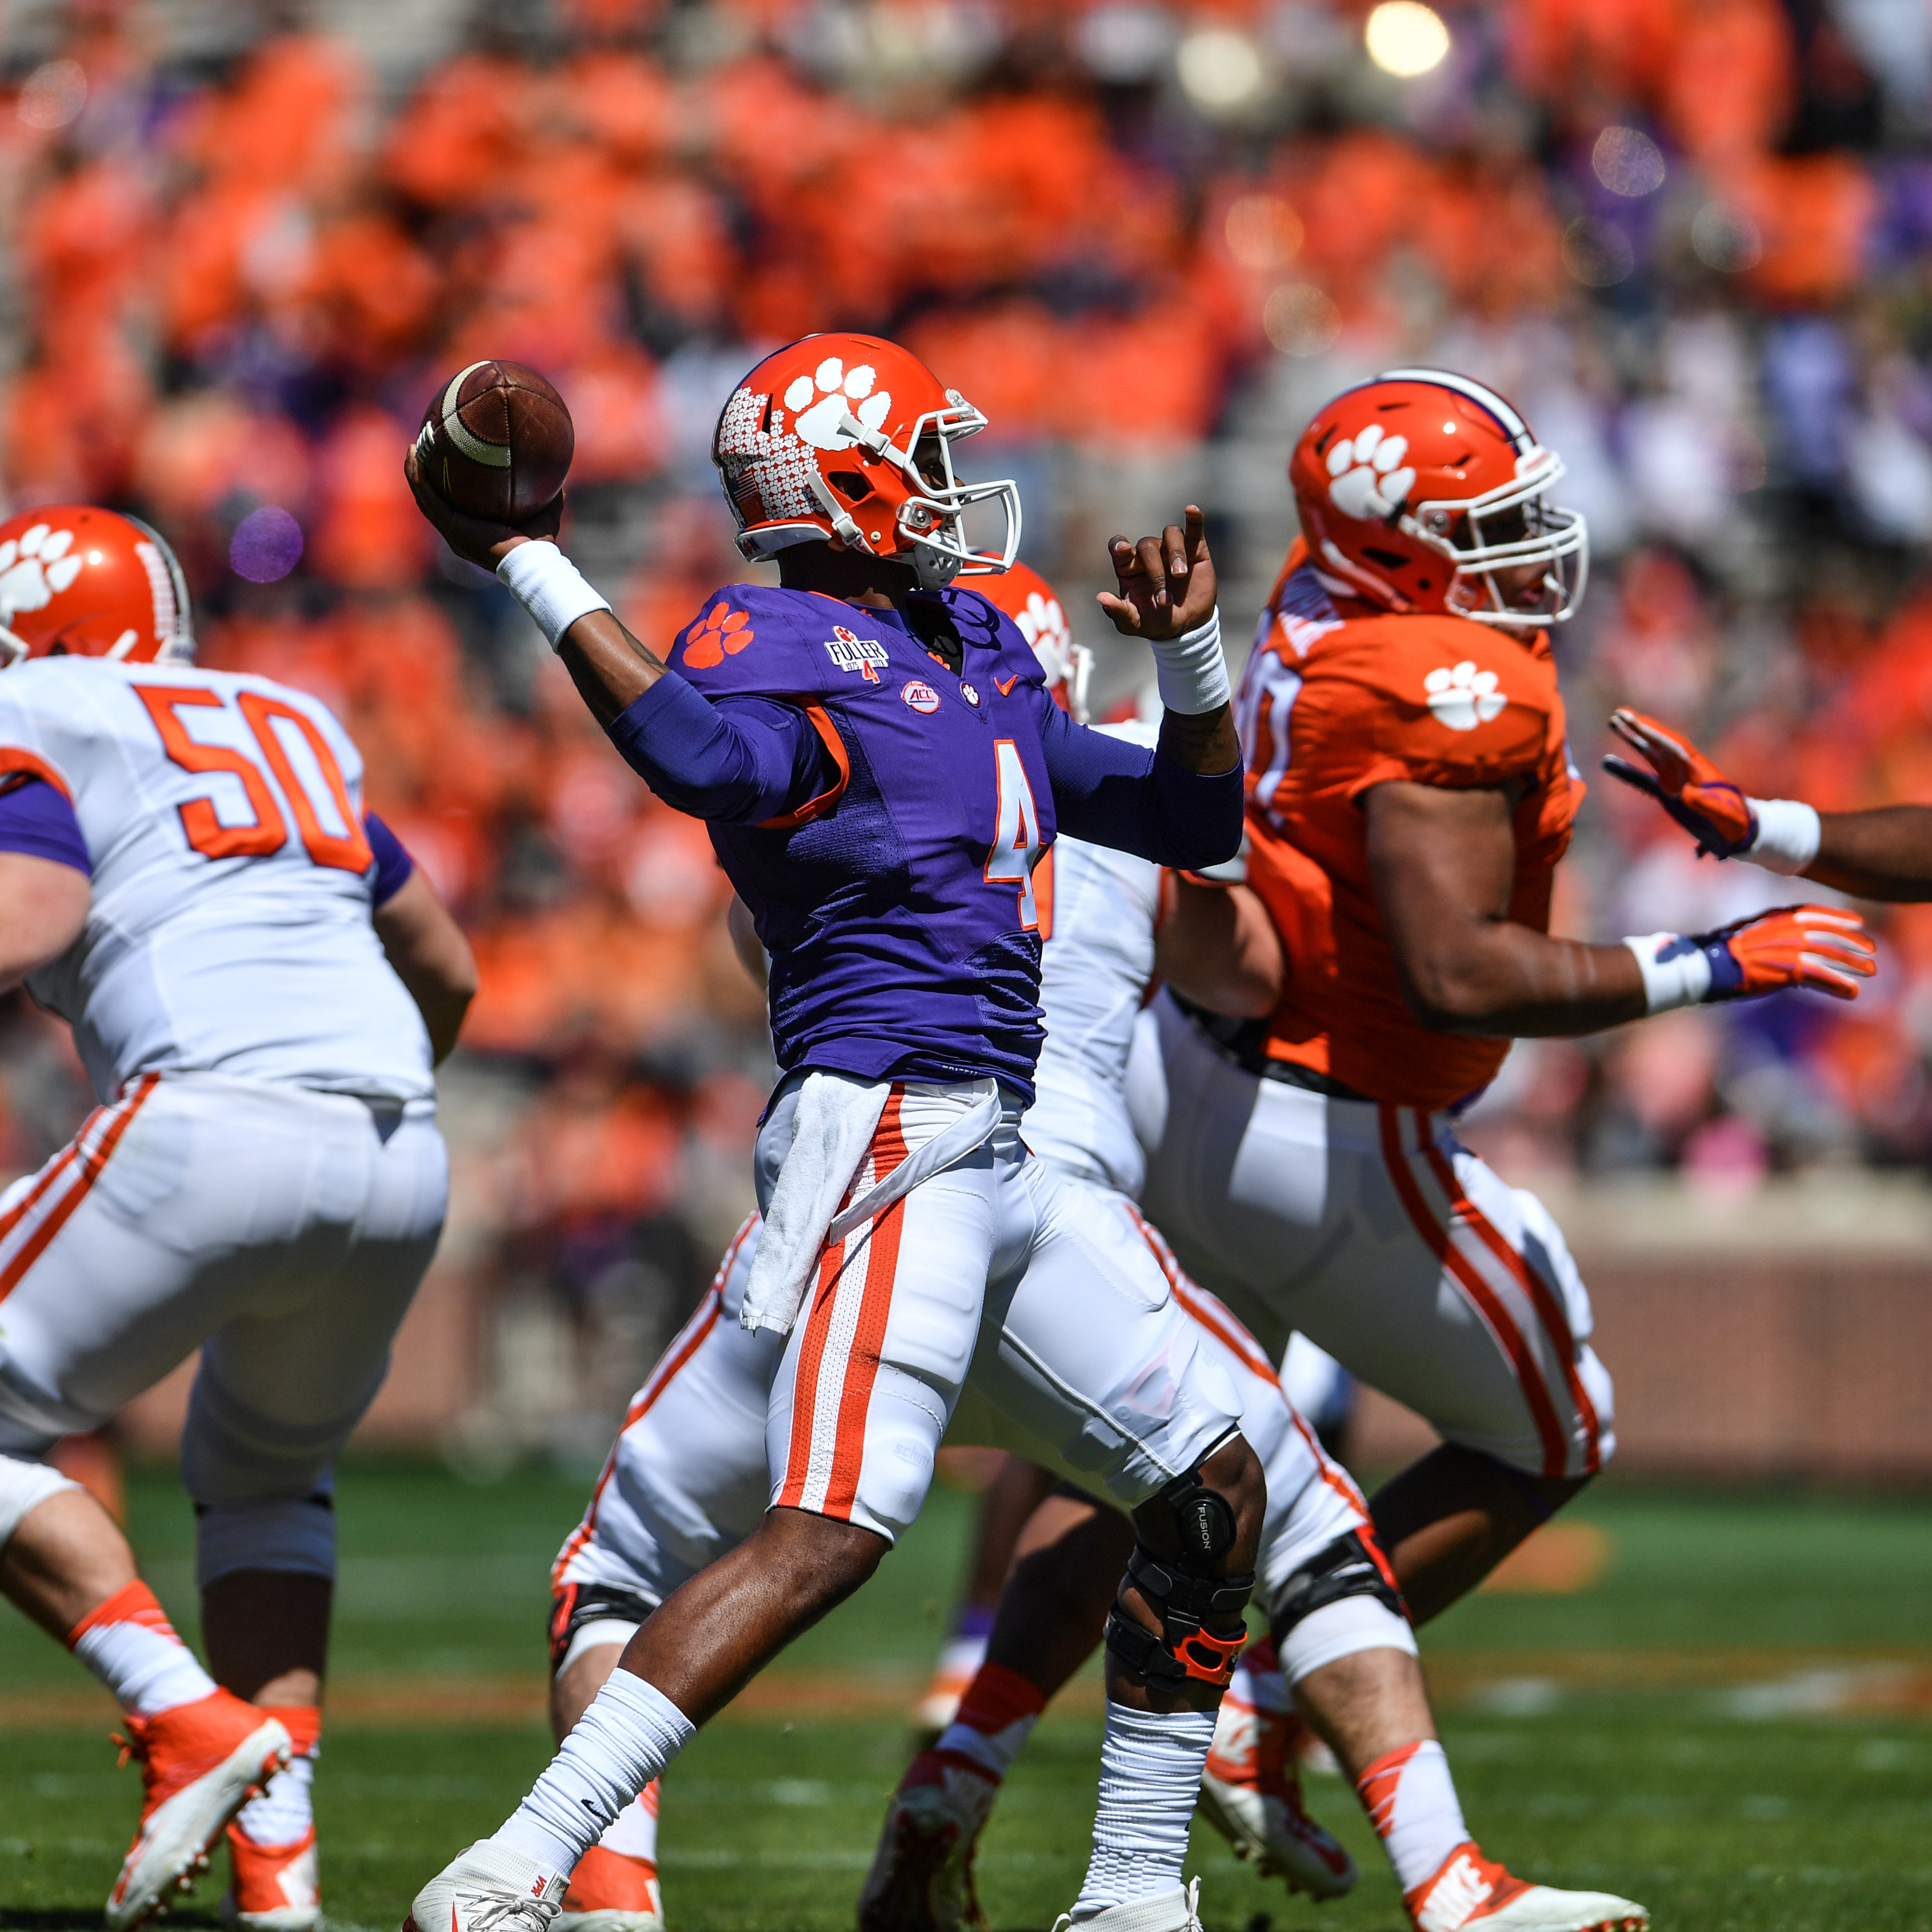 Watson Throws Two Scores in Spring Game